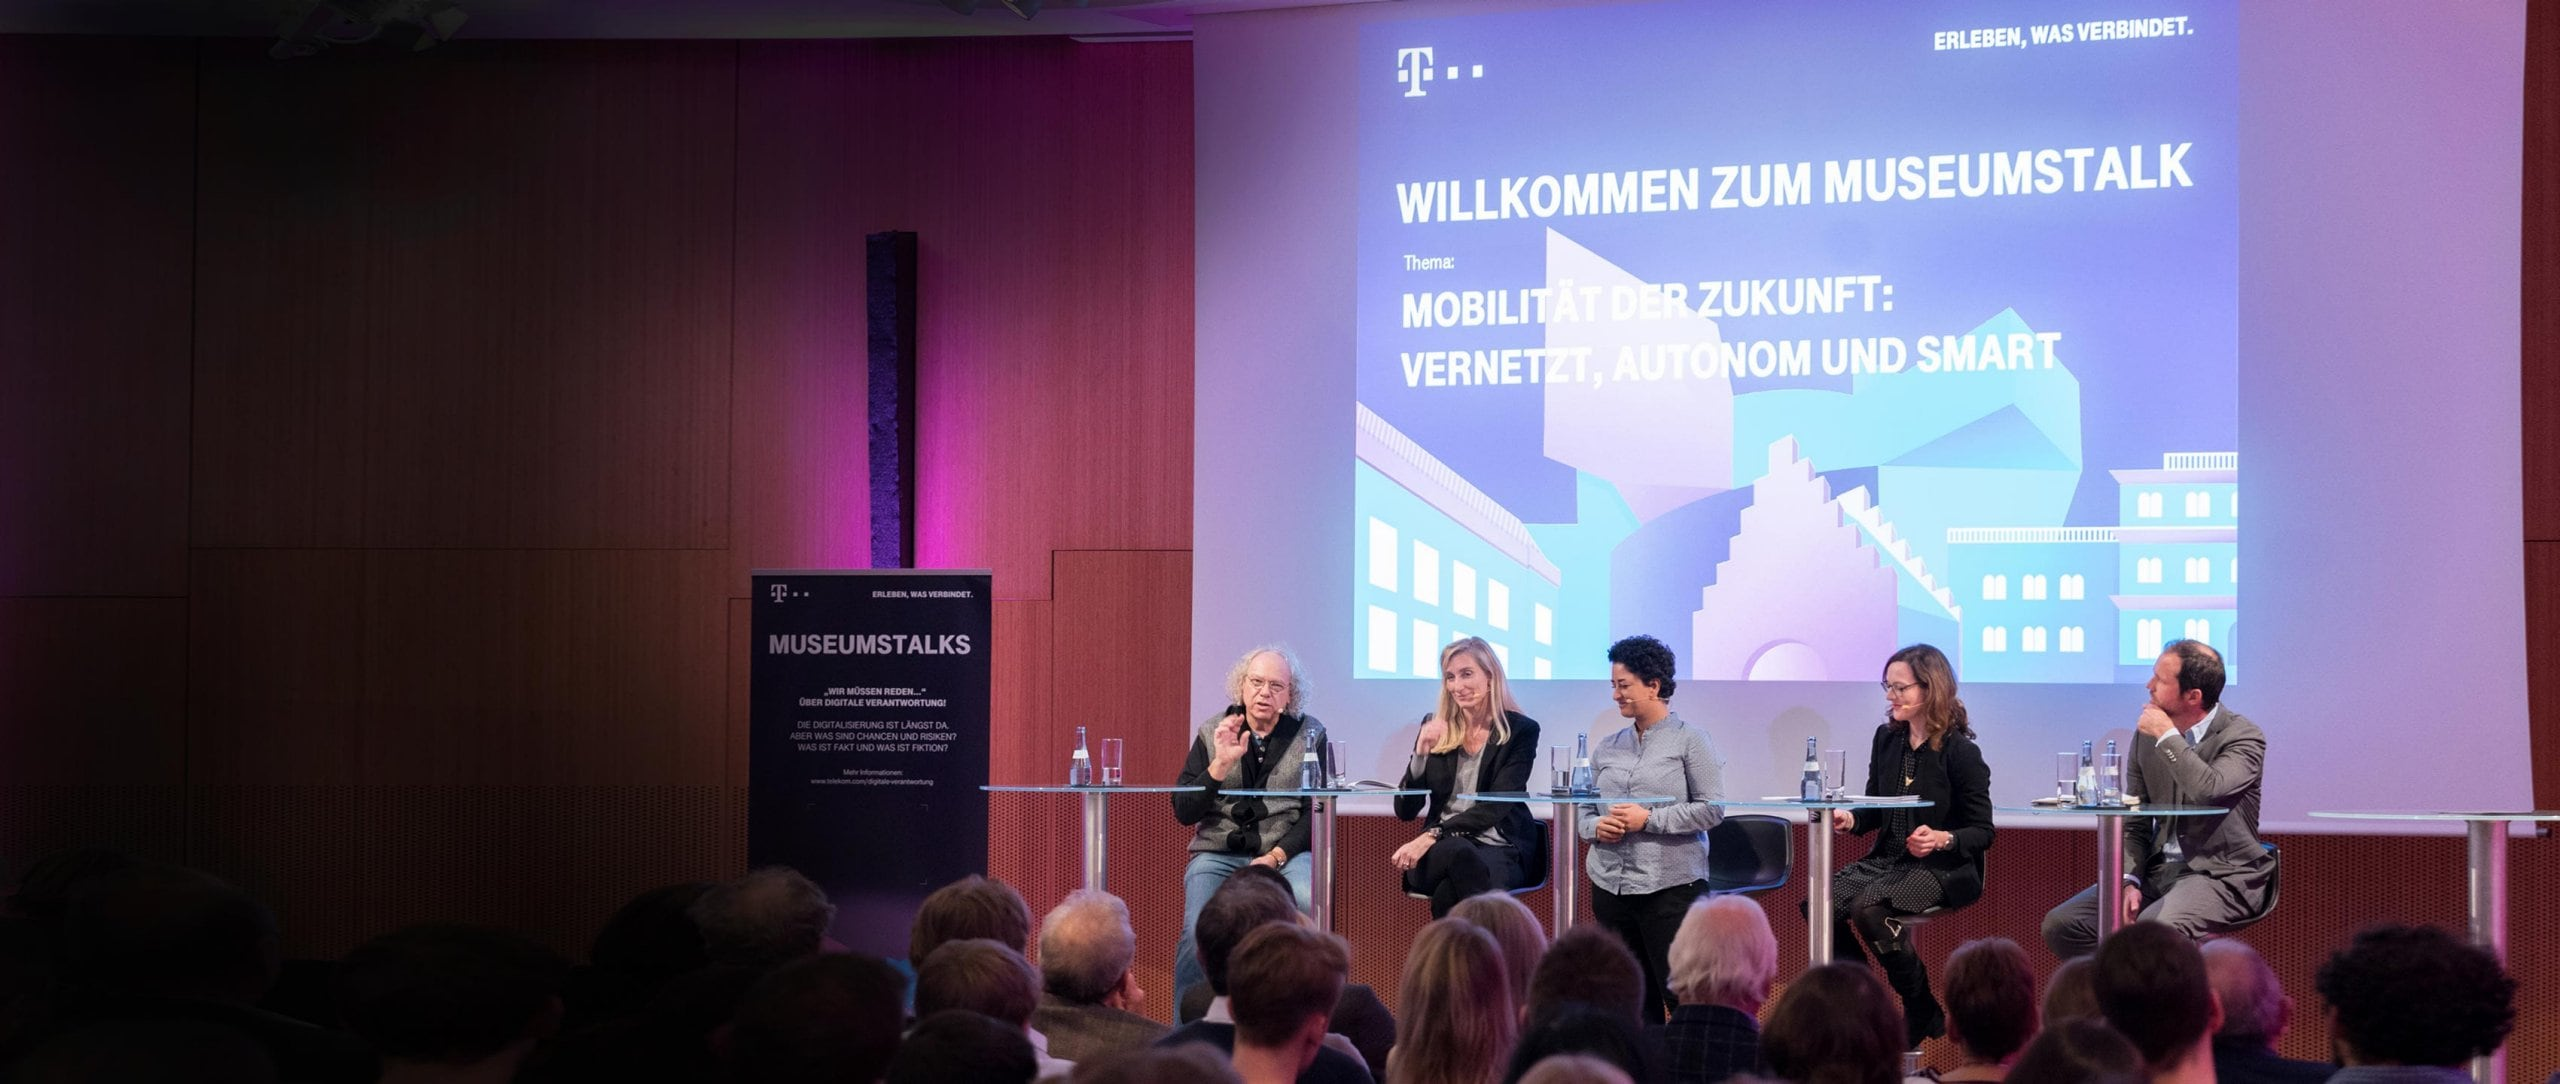 Museum talk: Panel discussion on Mobility of the Future.